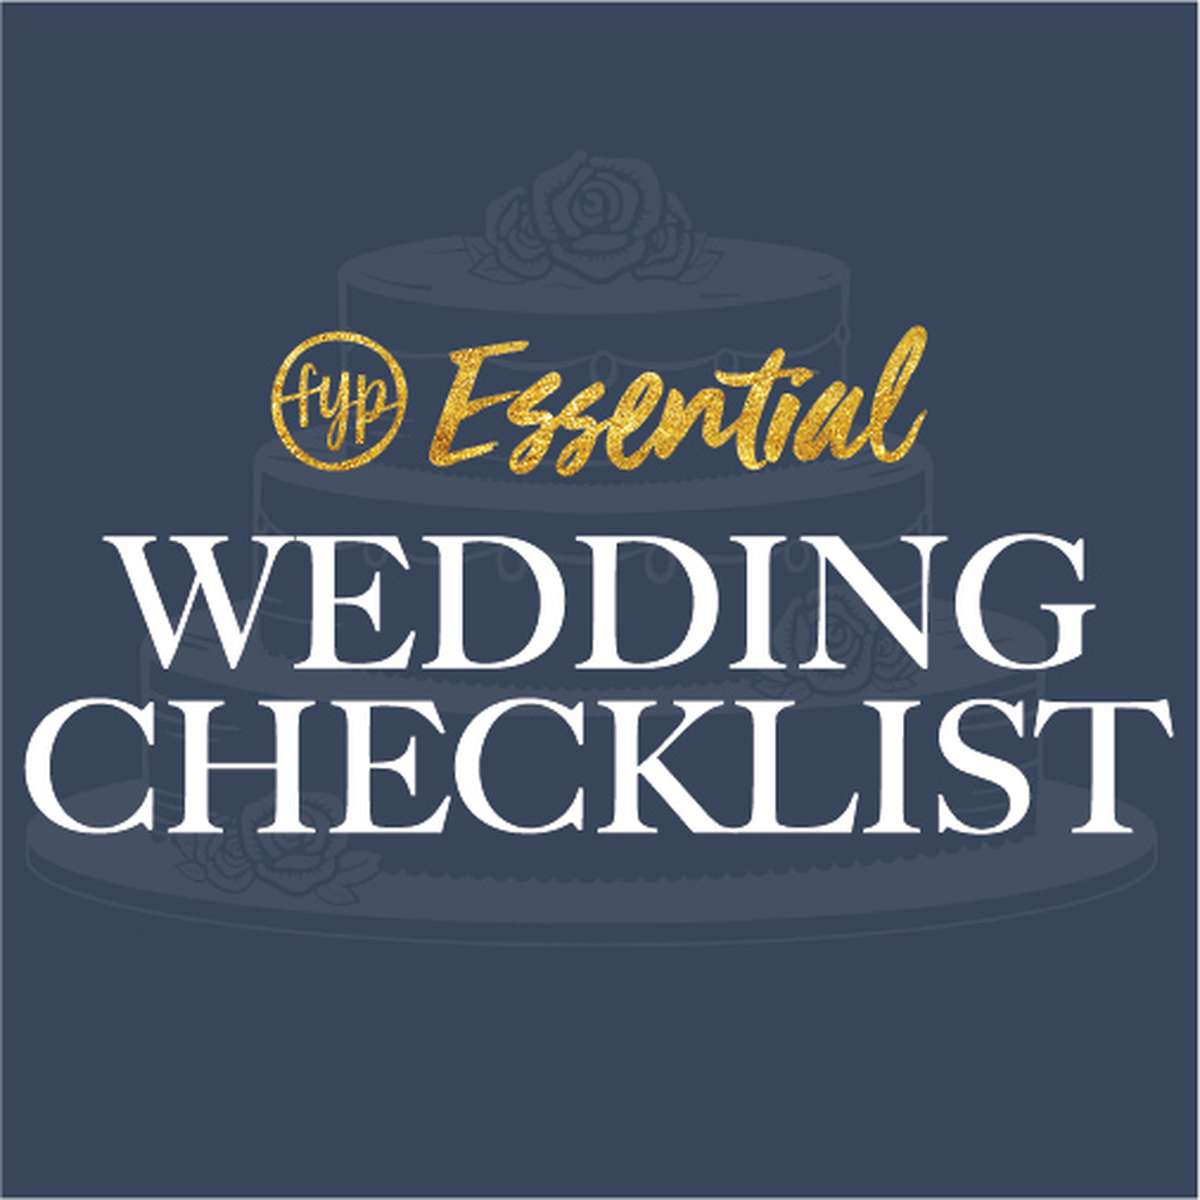 FYP Essential Wedding Checklist